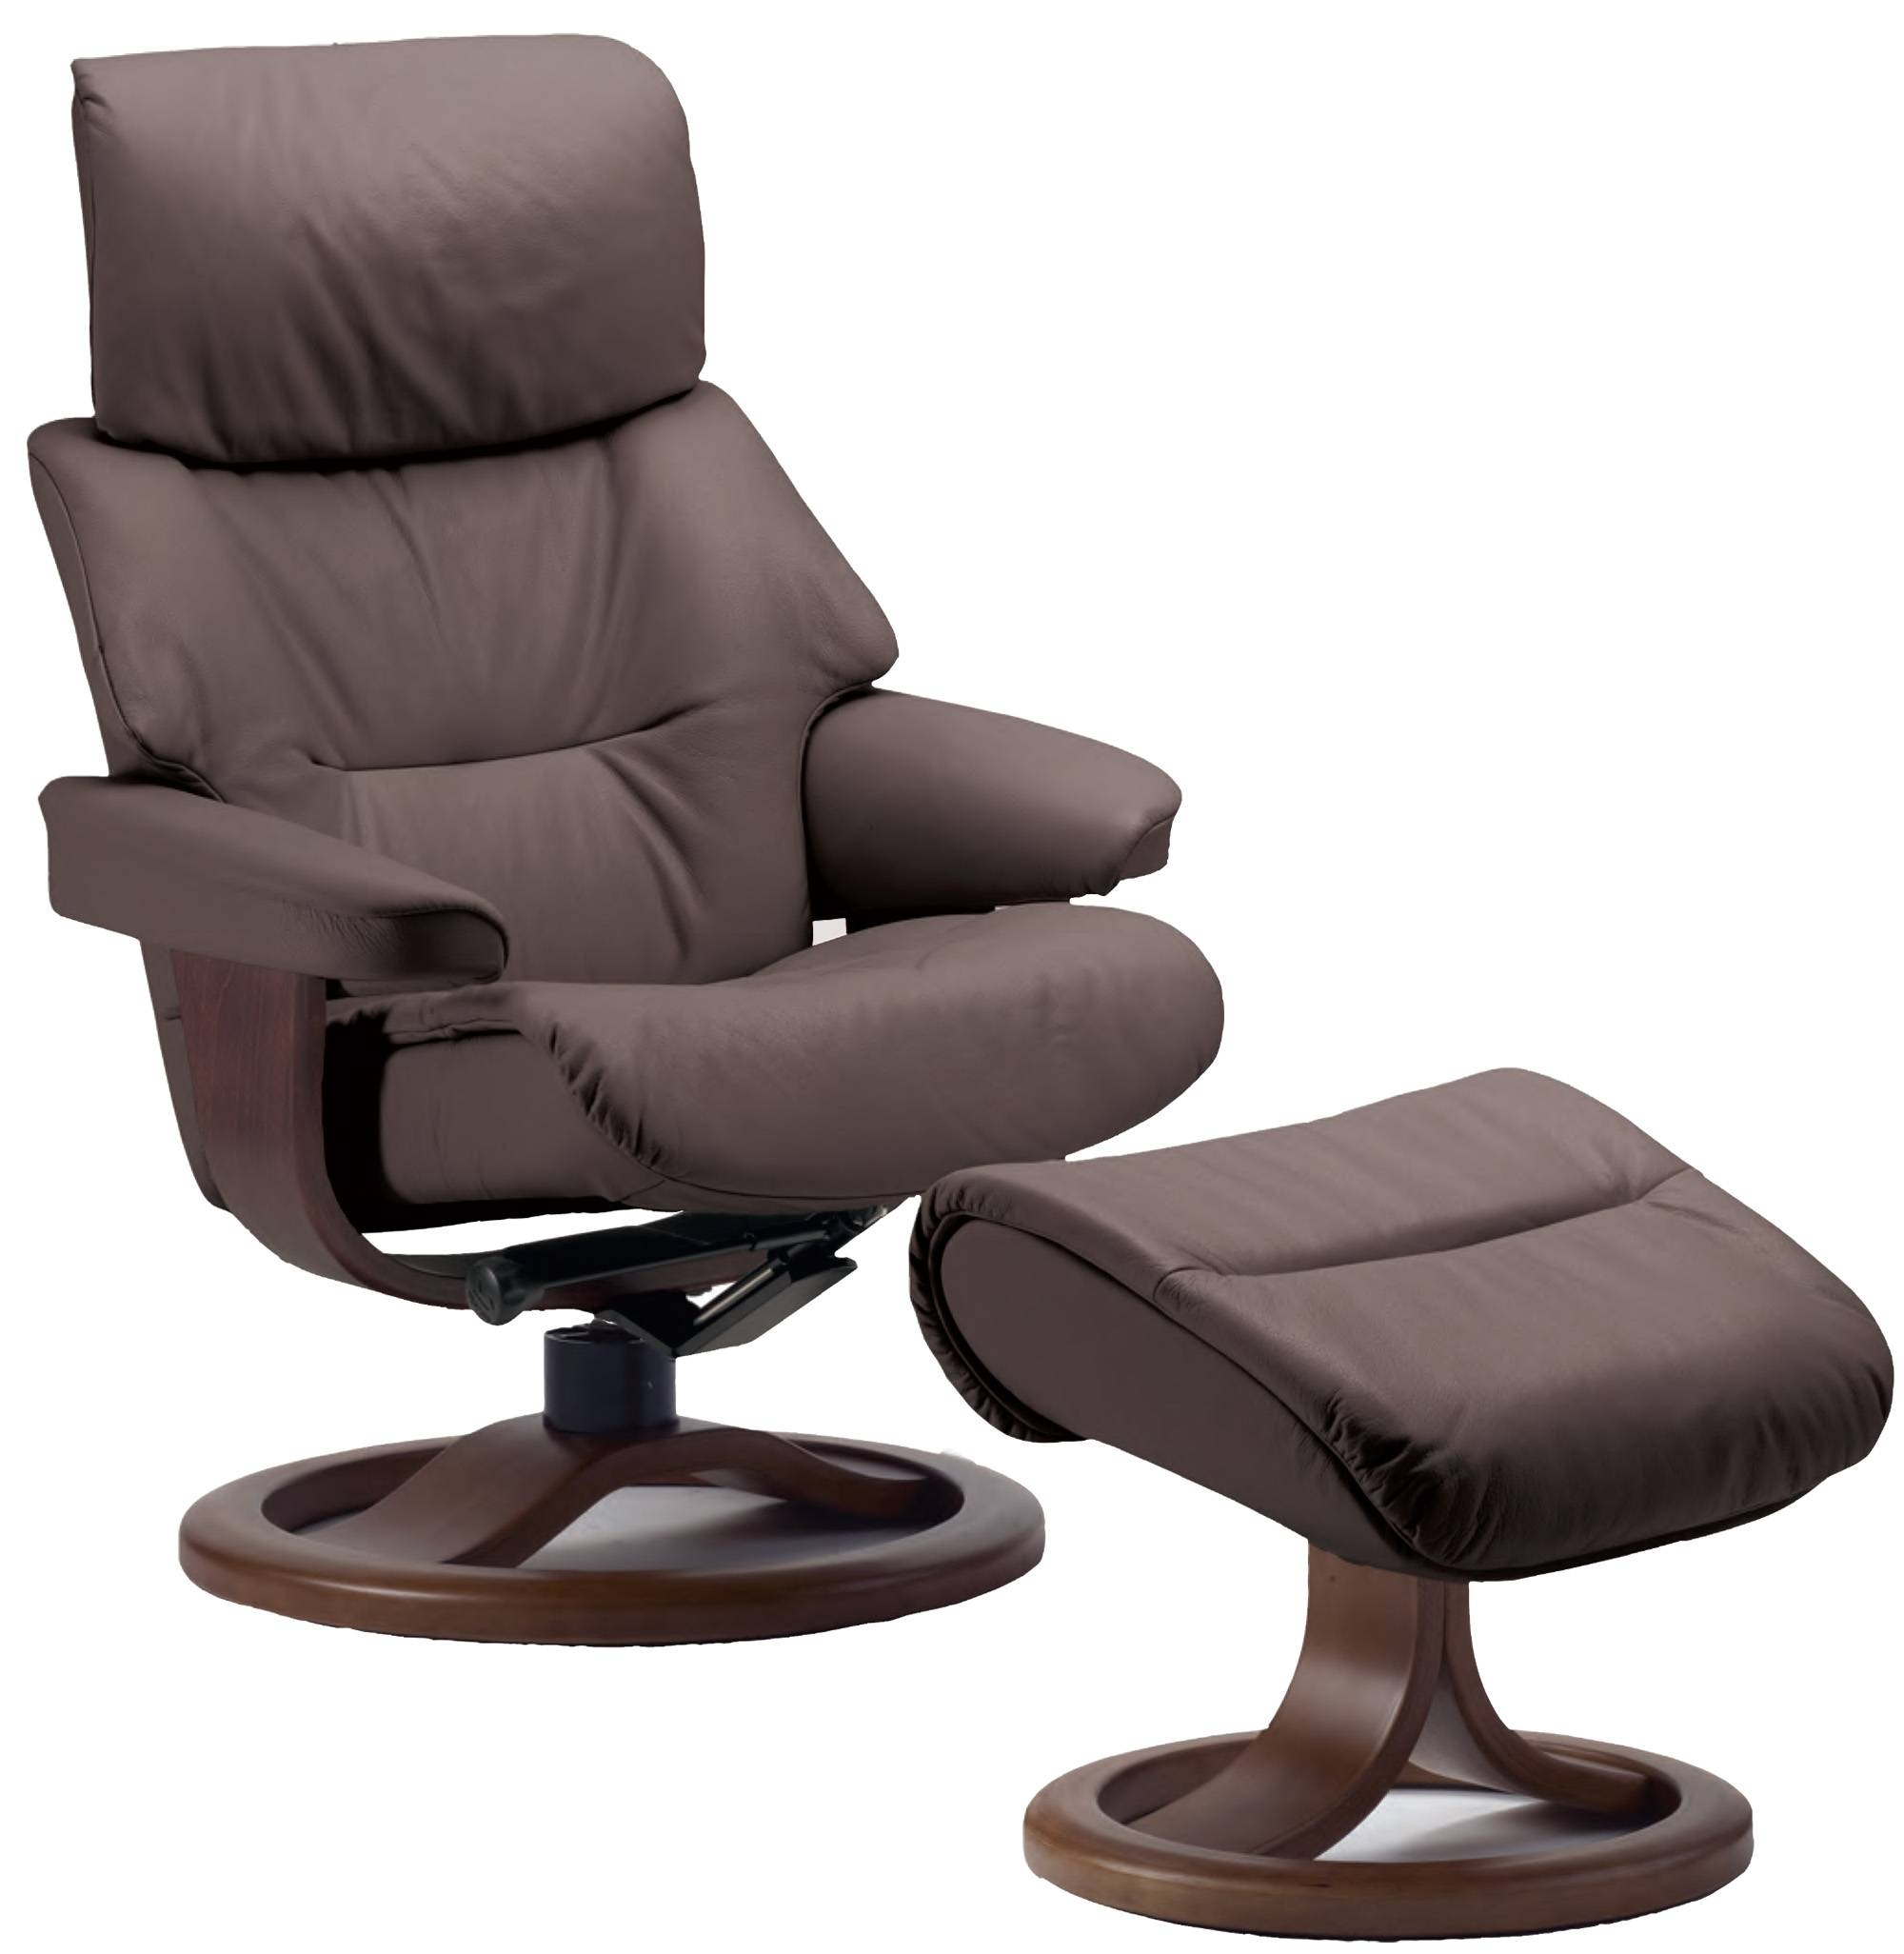 Fjords Grip Ergonomic Leather Recliner Chair + Ottoman for Ergonomic Sofas and Chairs (Image 17 of 30)